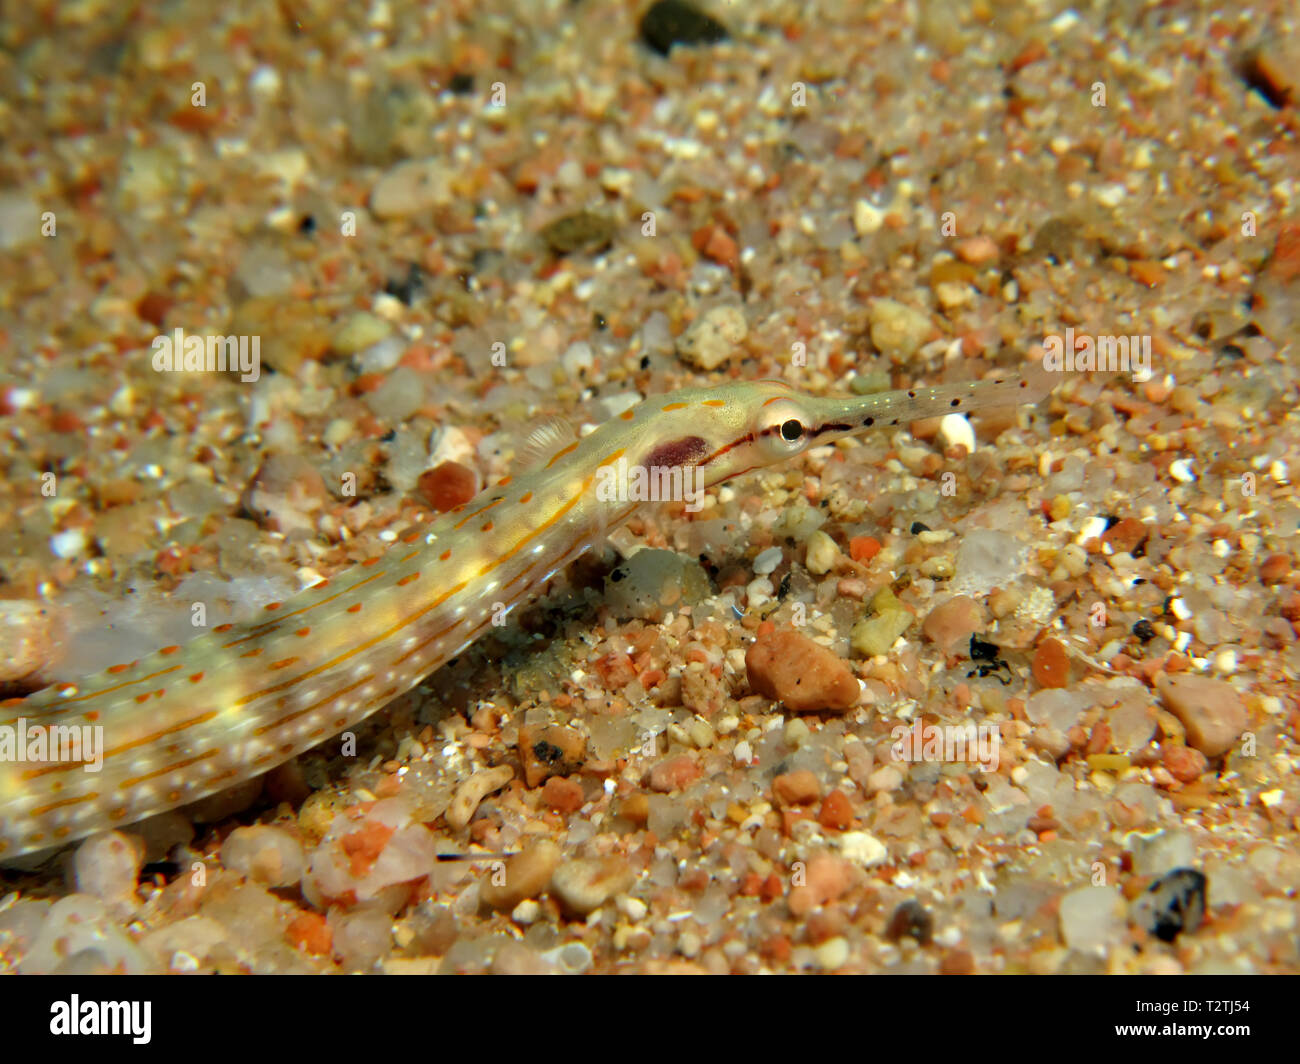 Guilded pipefish (Corythoichthys cf. schultzi). Taking in Red Sea, Egypt. - Stock Image